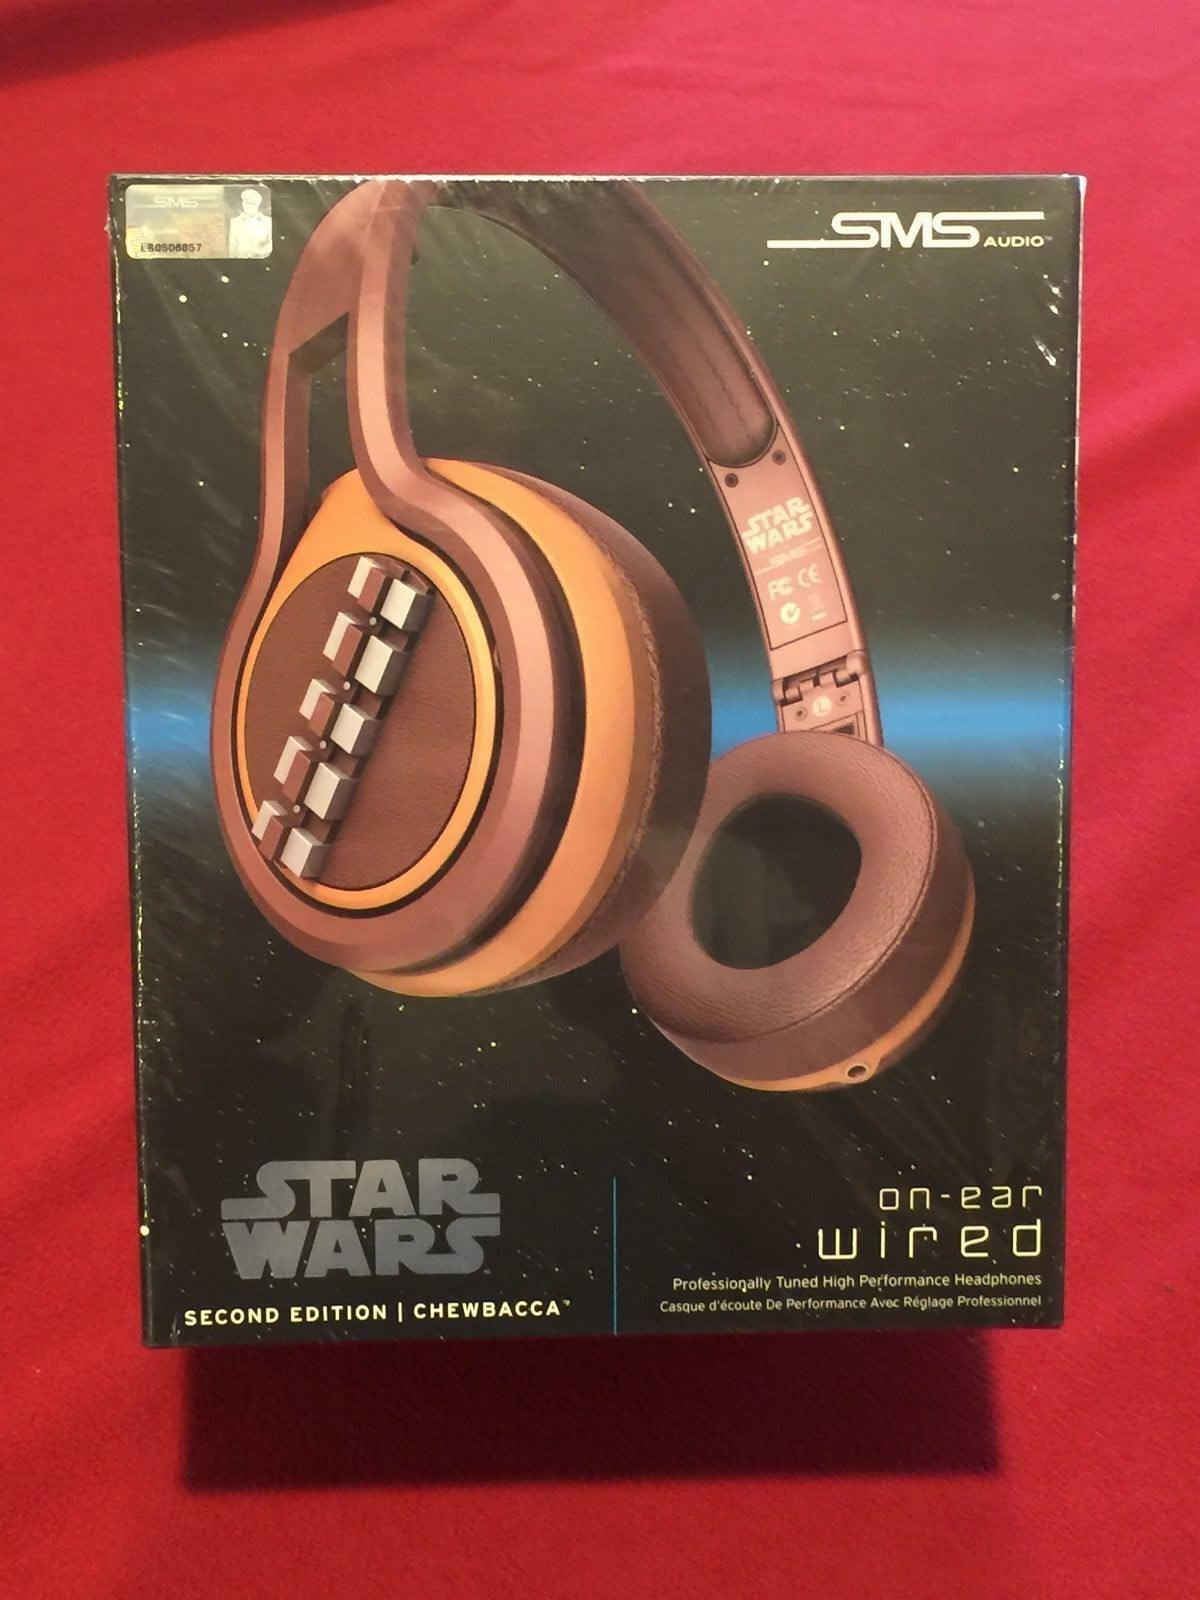 Star Wars Second Edition Chewbacca On Ear Wired Headphones SMS Audio NEW MIB